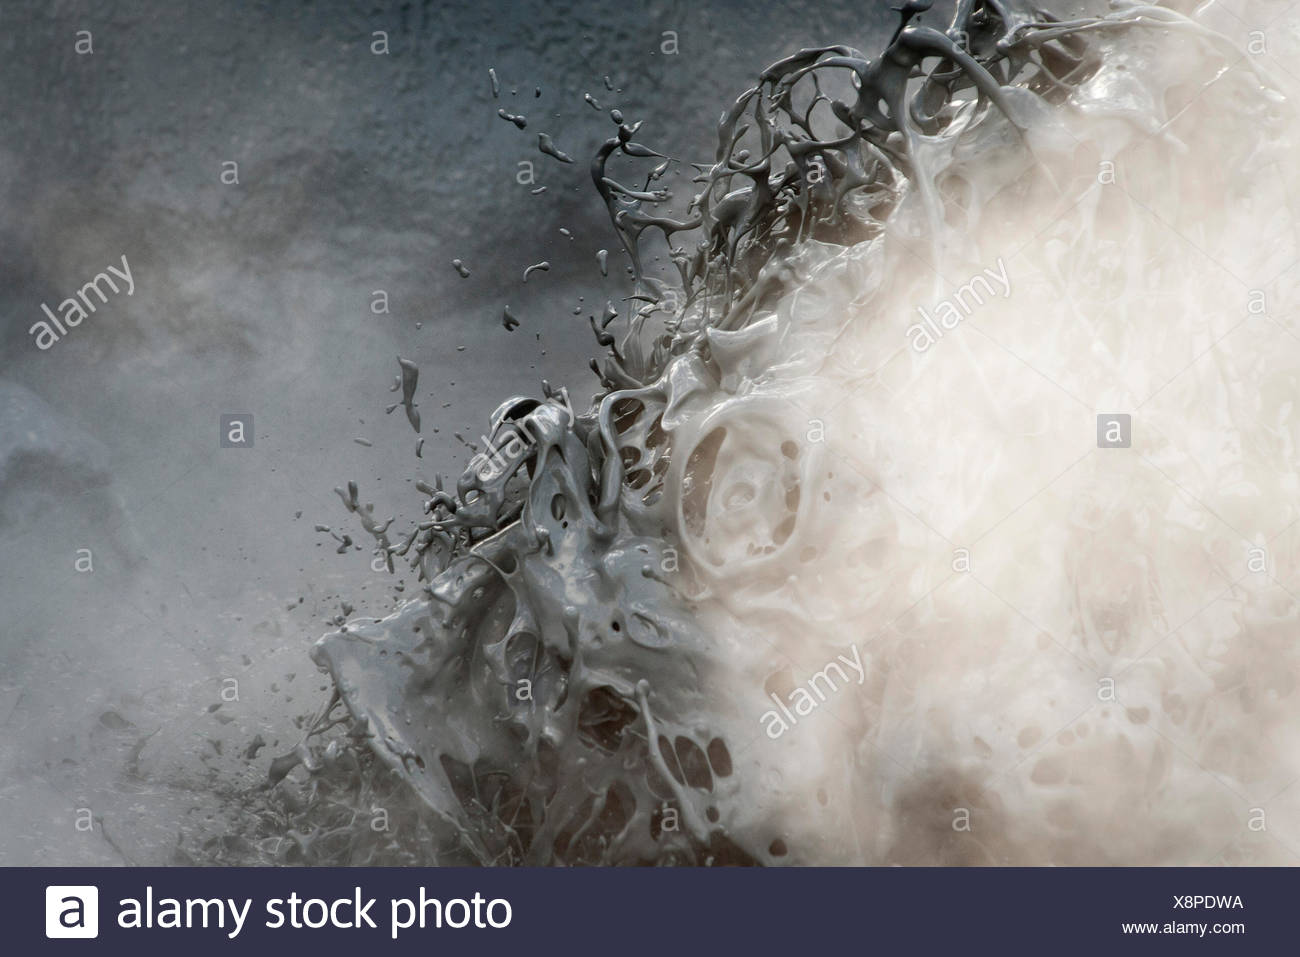 Mud Splatter Stock Photos & Mud Splatter Stock Images - Alamy